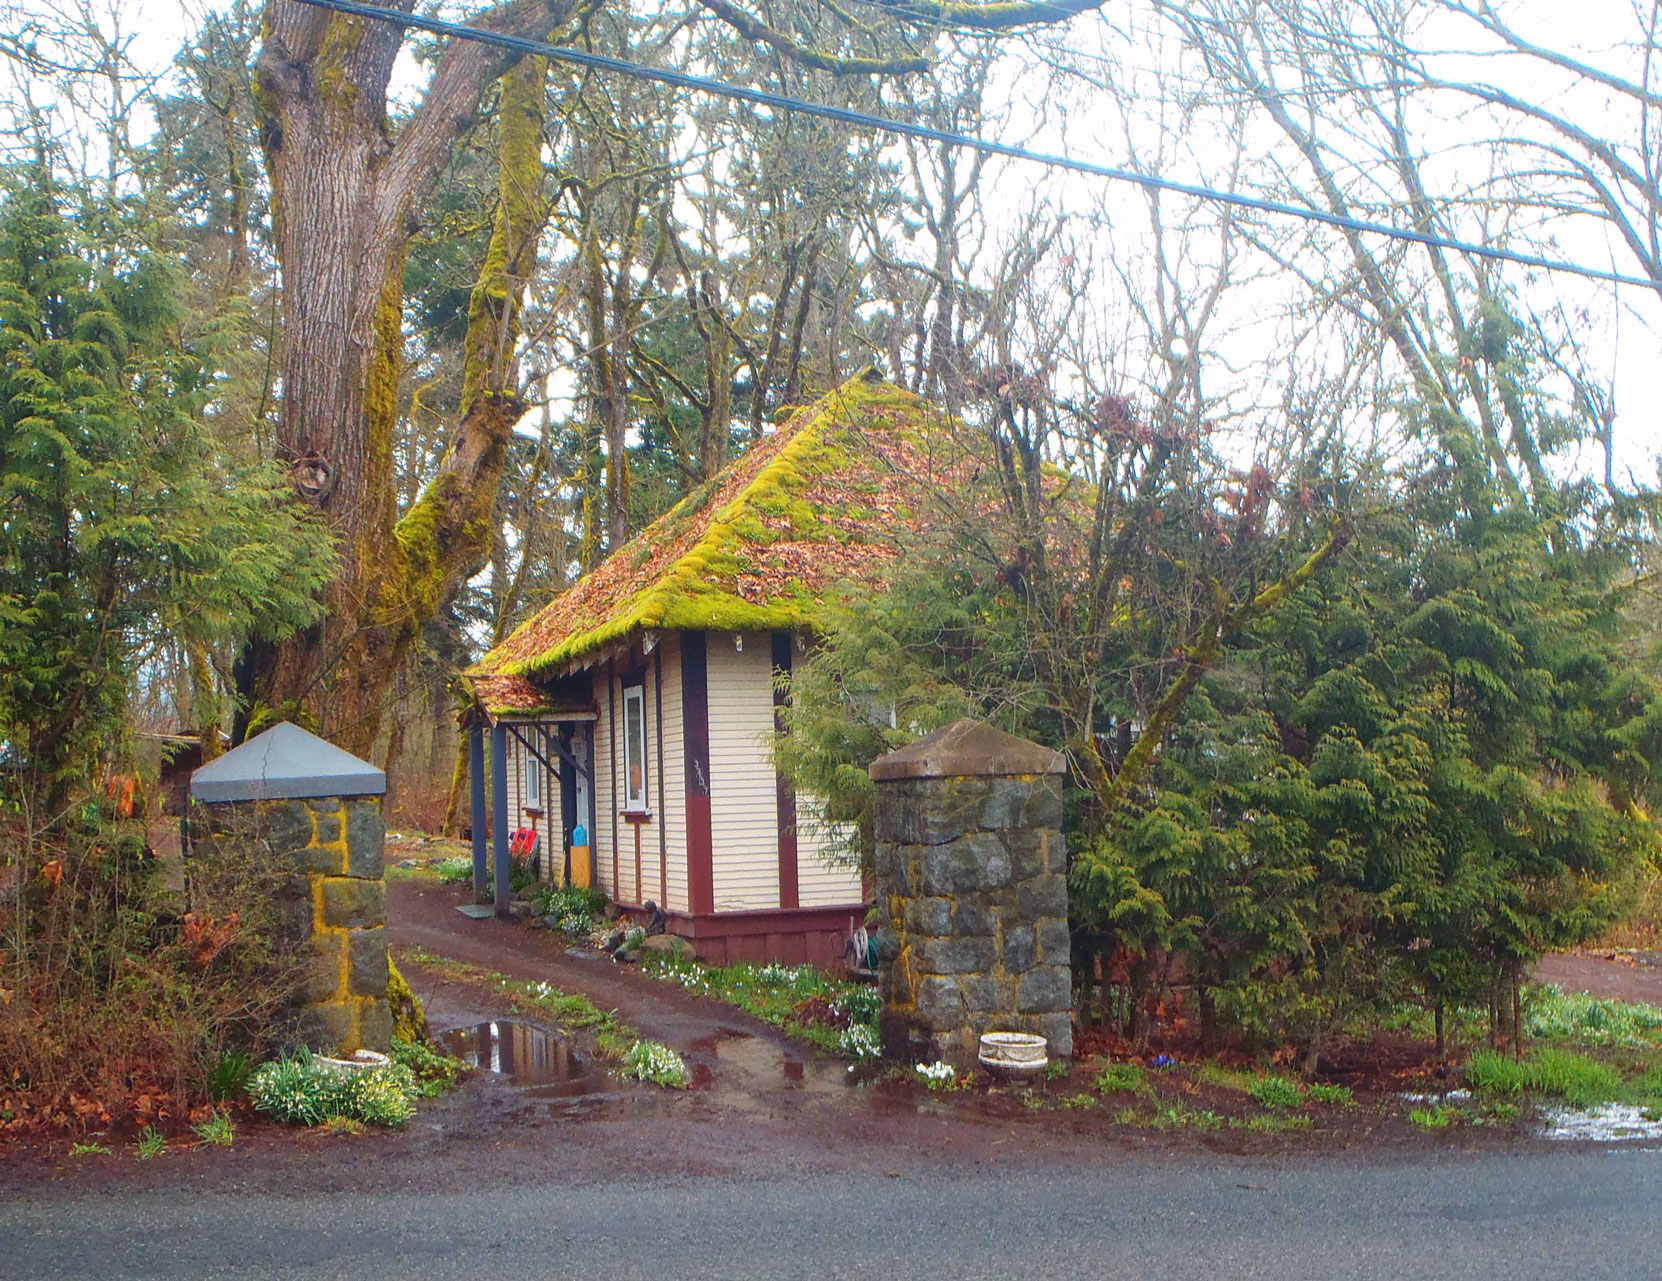 Gatehouse of The Grange, 3443 Drinkwater Raod, North Cowichan. Built in 1911 by architect Samuel Maclure for Sir Clive Phillips-Wolley (photo by Temple Lodge No. 33 Historian)